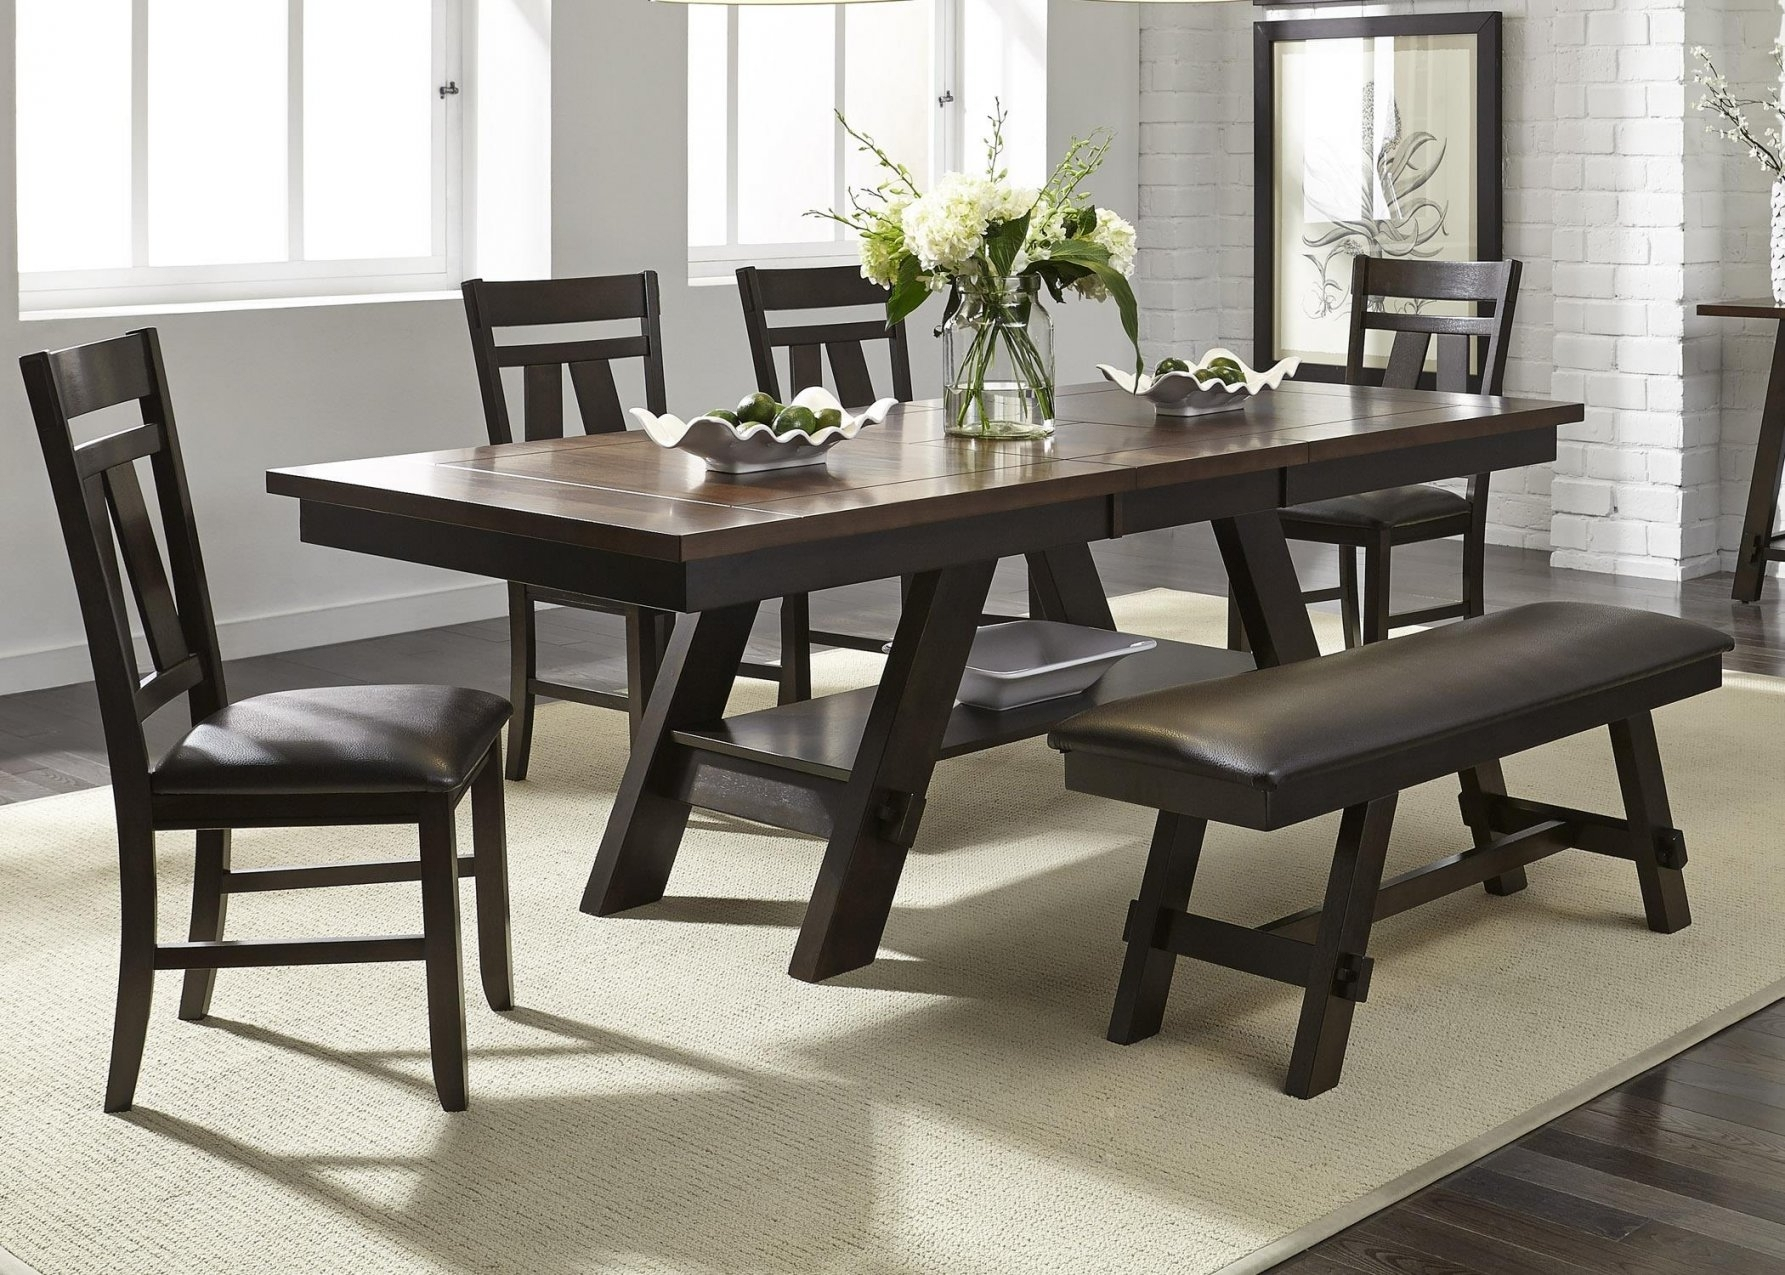 6 Piece Dining Table Set – Castrophotos In Newest Partridge 7 Piece Dining Sets (Photo 11 of 20)